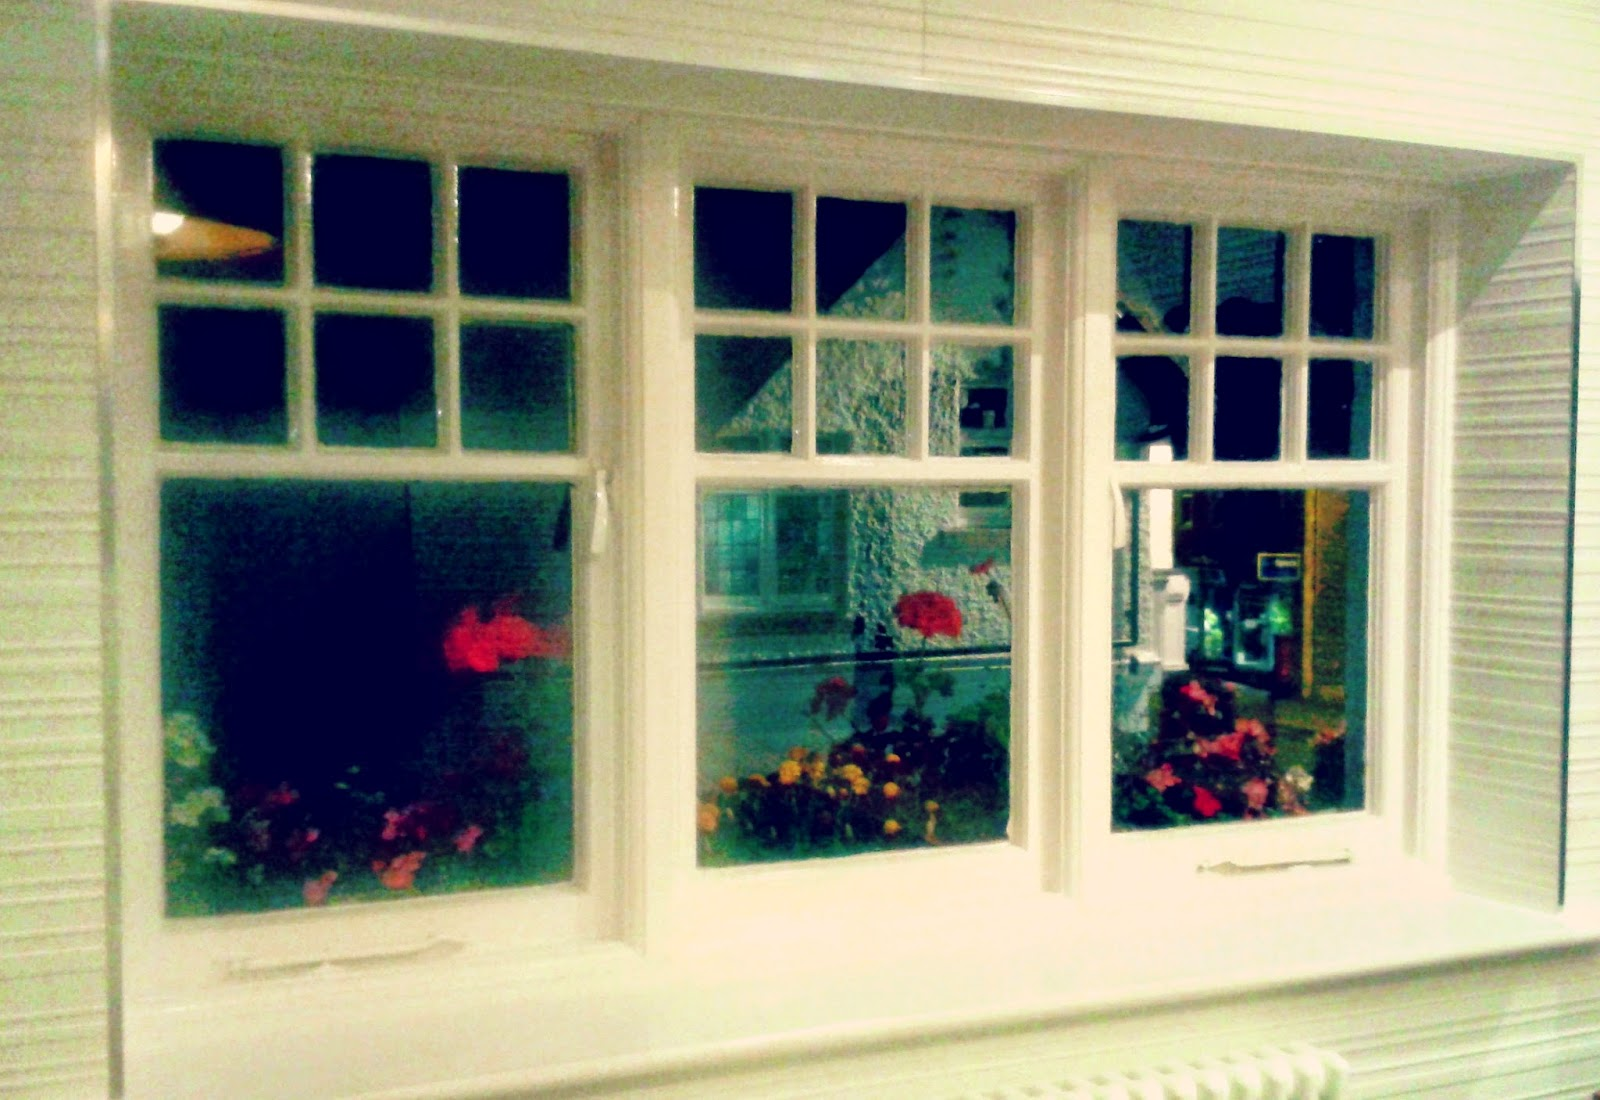 Project 365 #38 day 258 - Window boxes